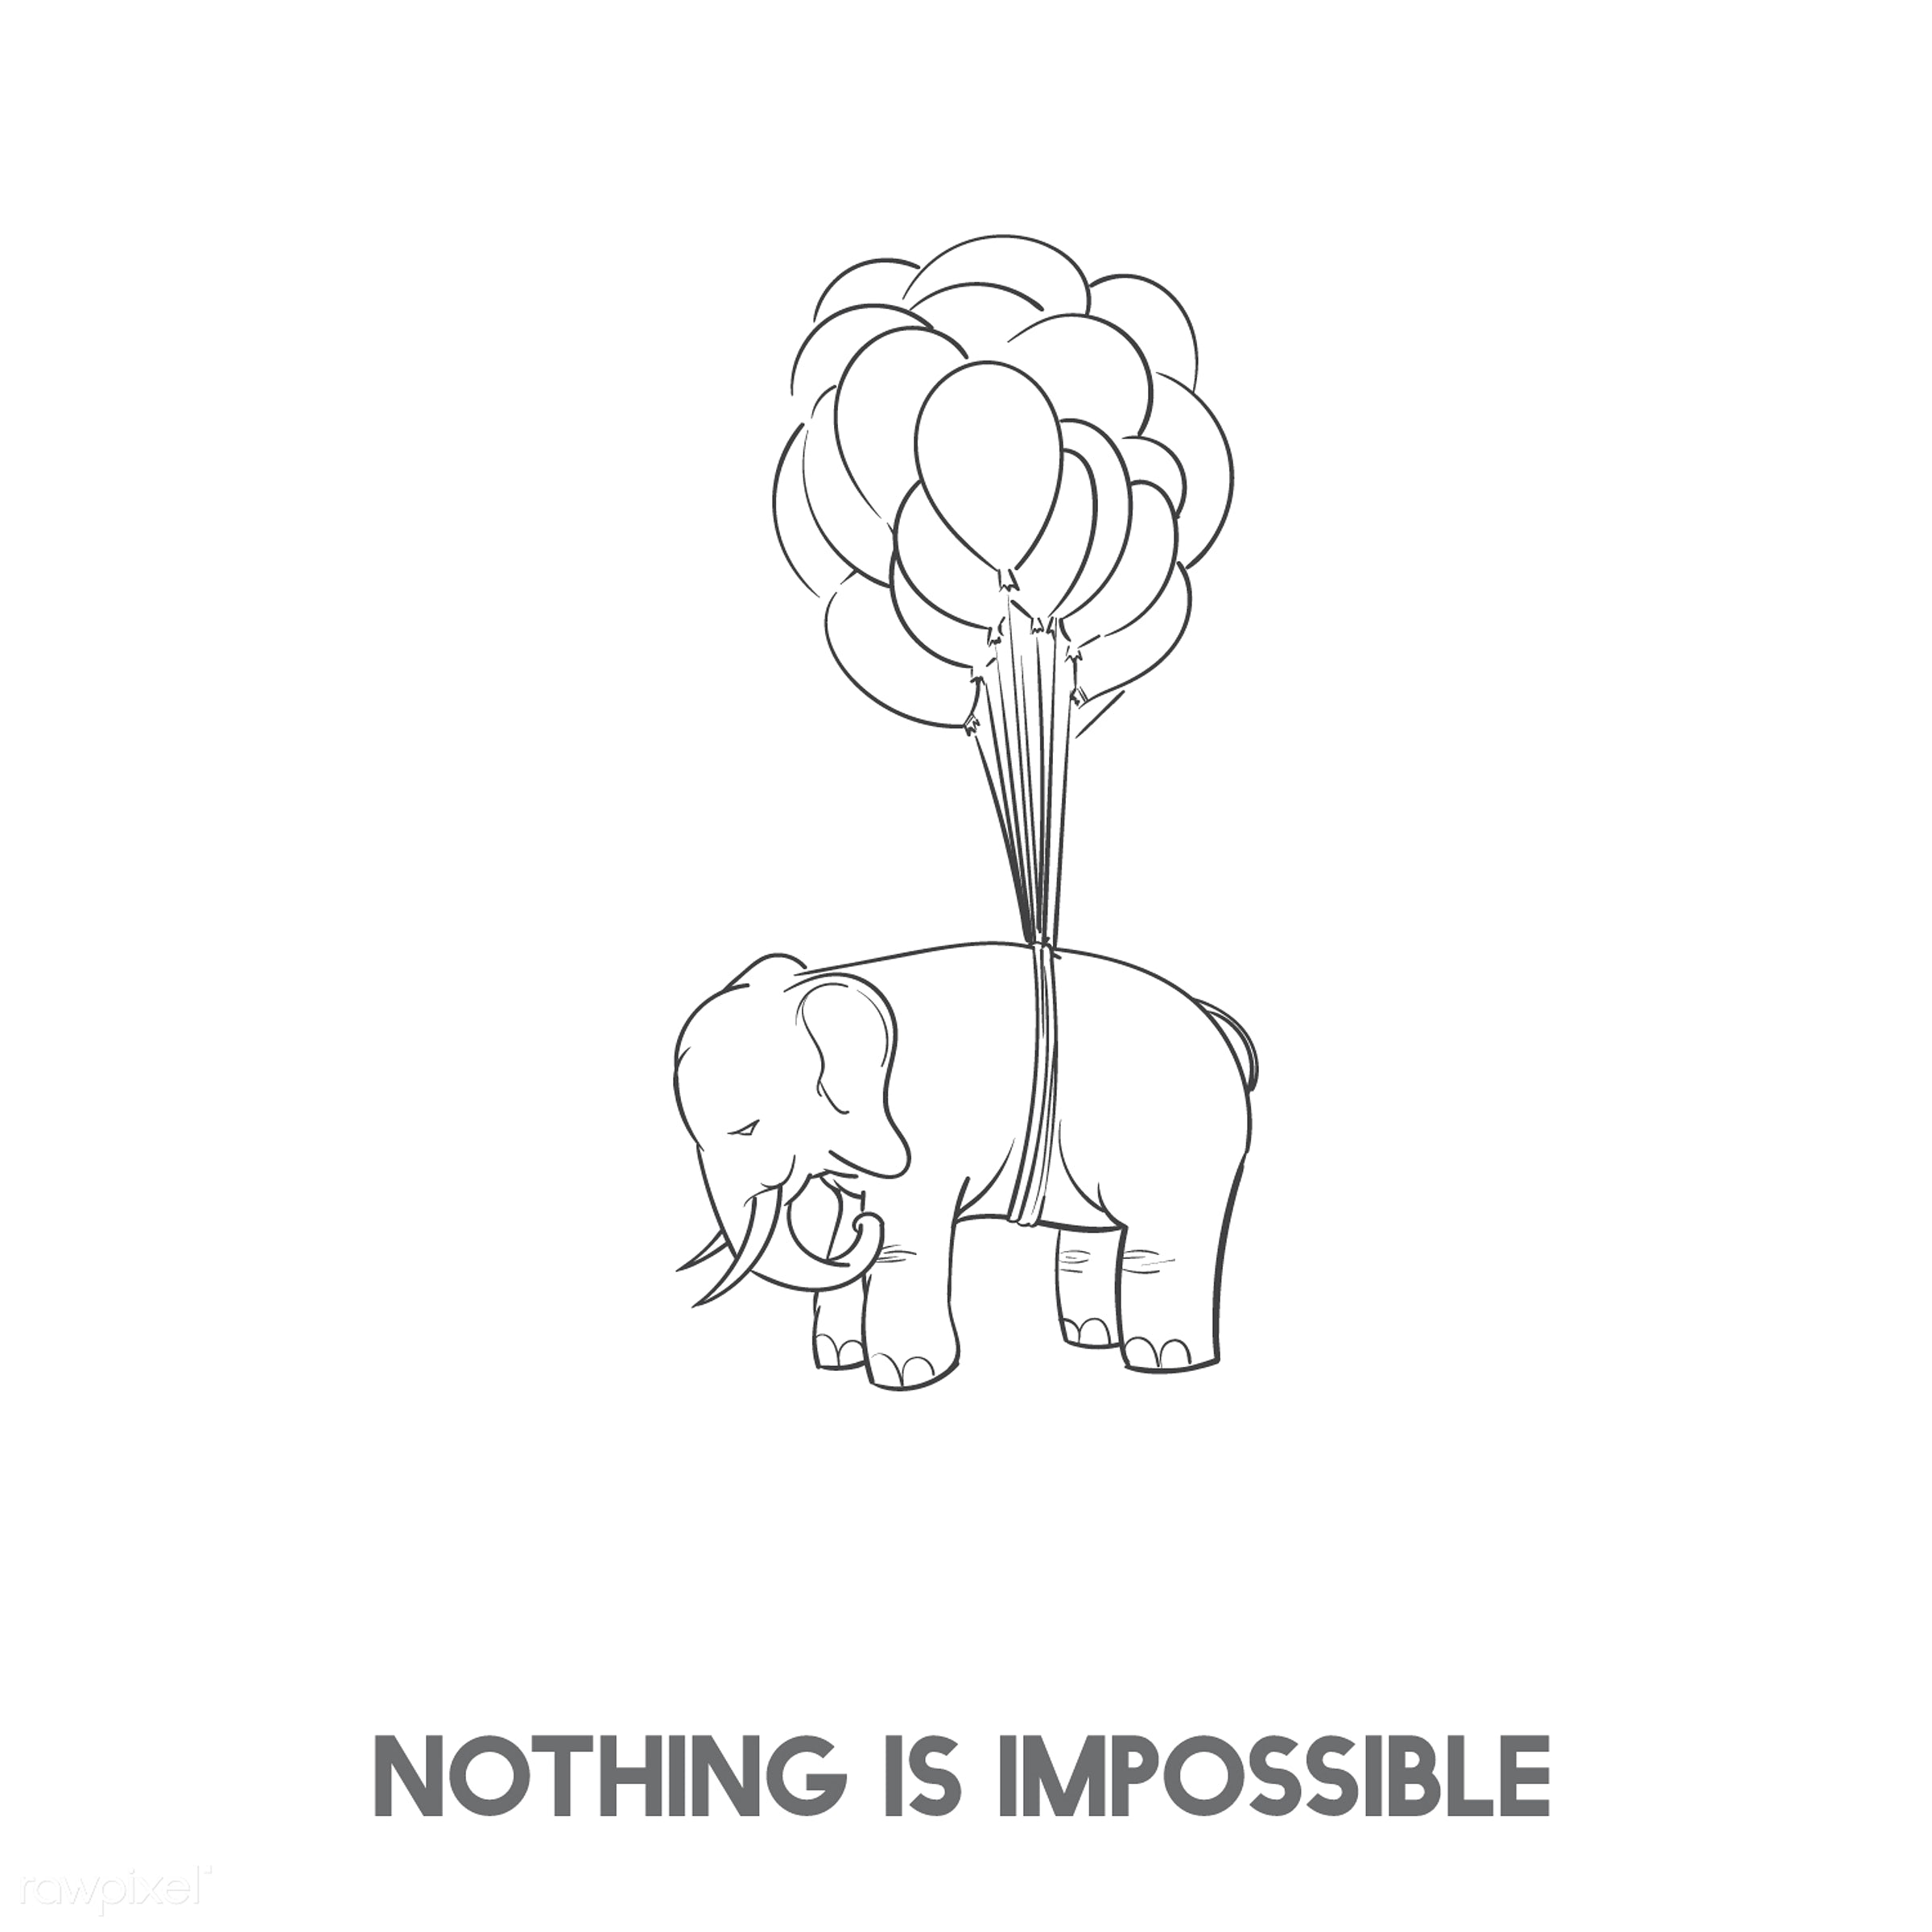 Nothing is impossible - afloat, air, animal, art, balloon, creative, creativity, design, drawing, drawn, elephant, elevated...